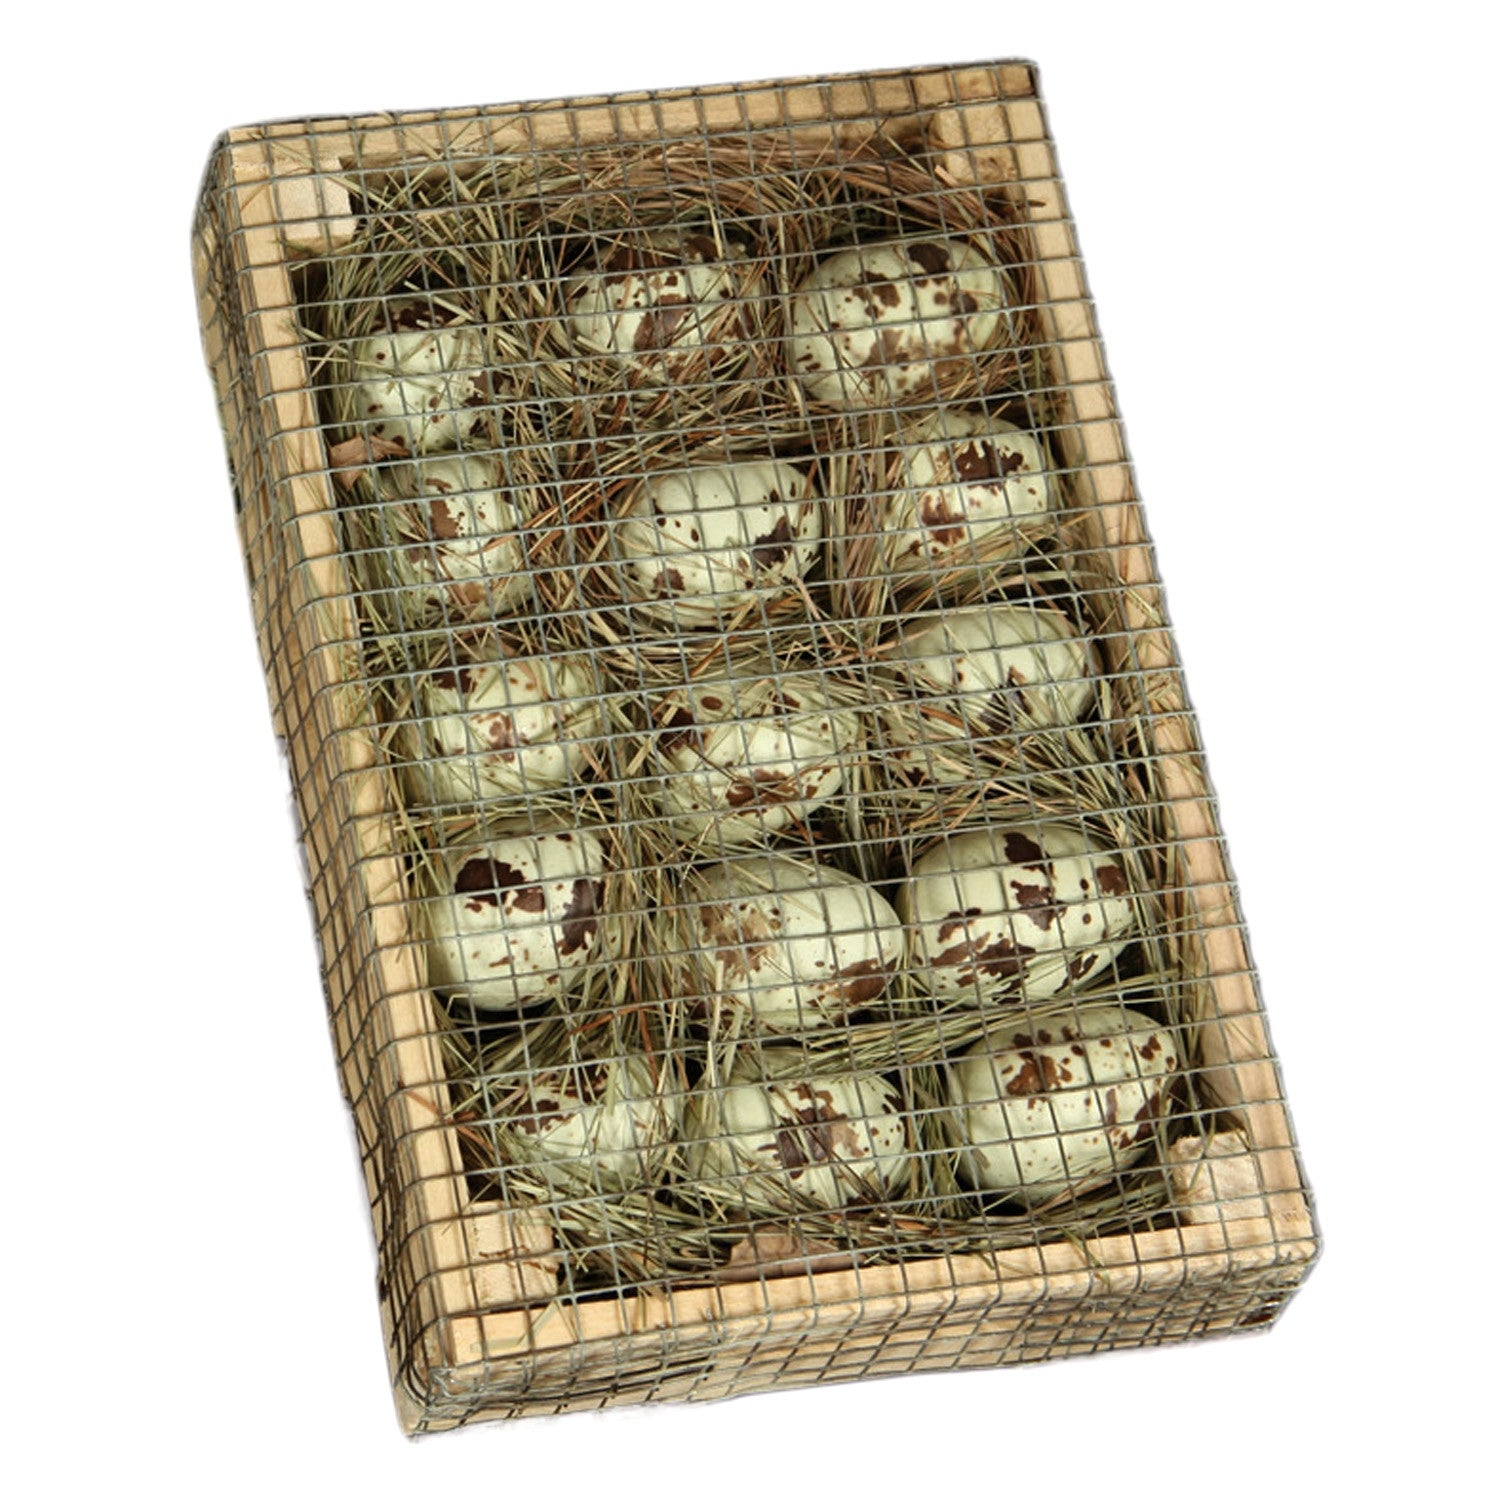 Egg Crate with Speckled Eggs